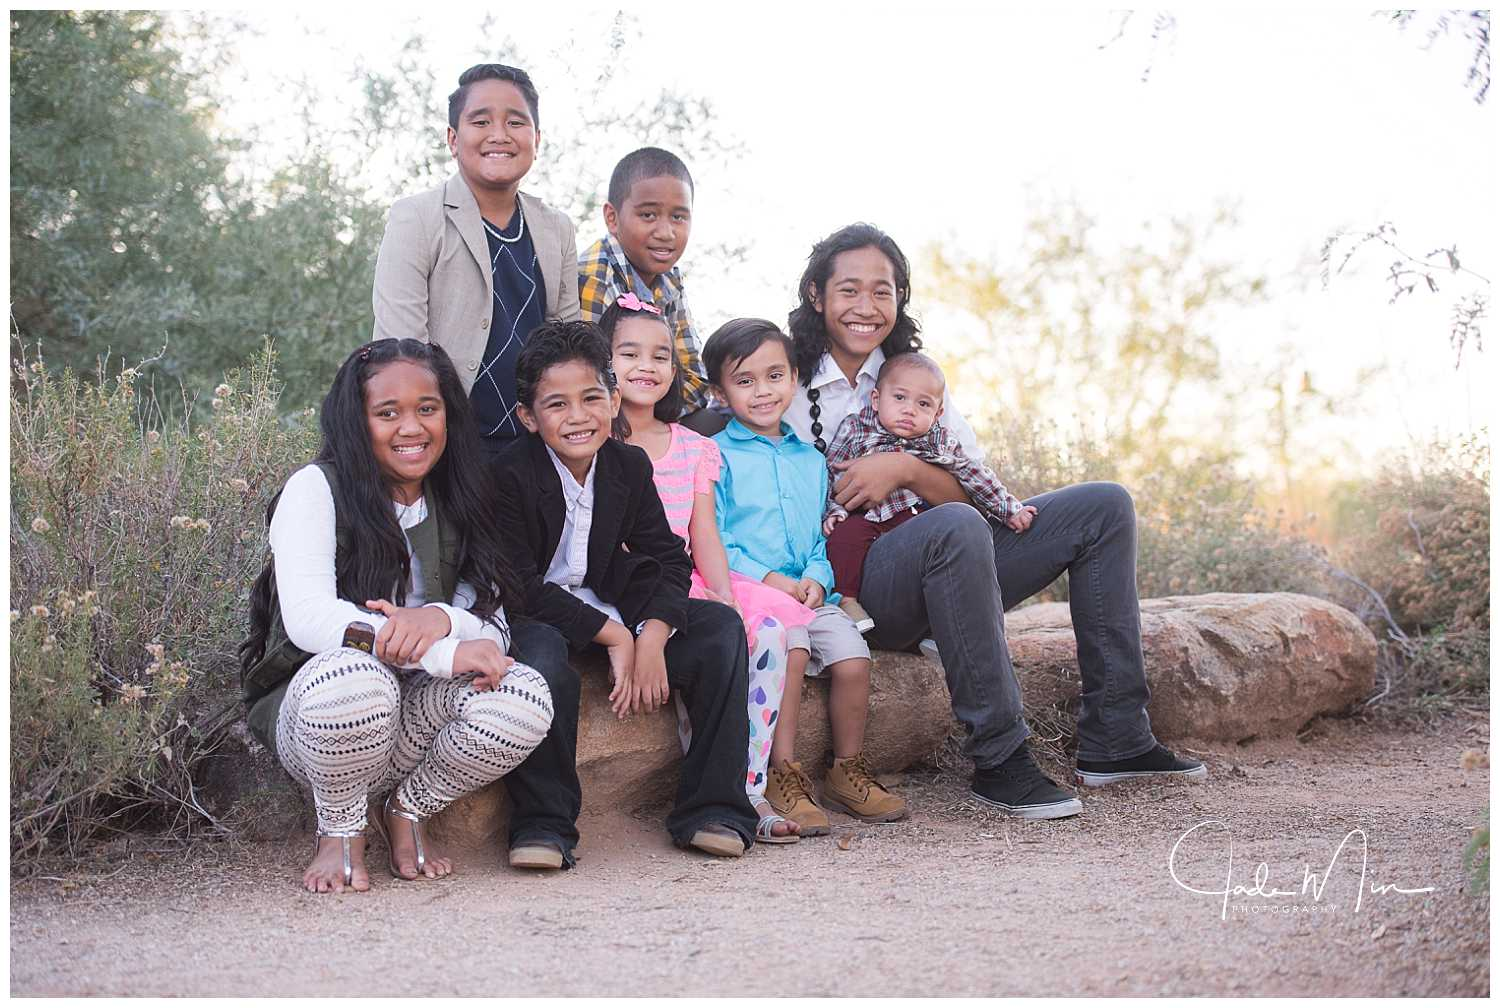 I've never met a group of sweeter kids than this one. :)